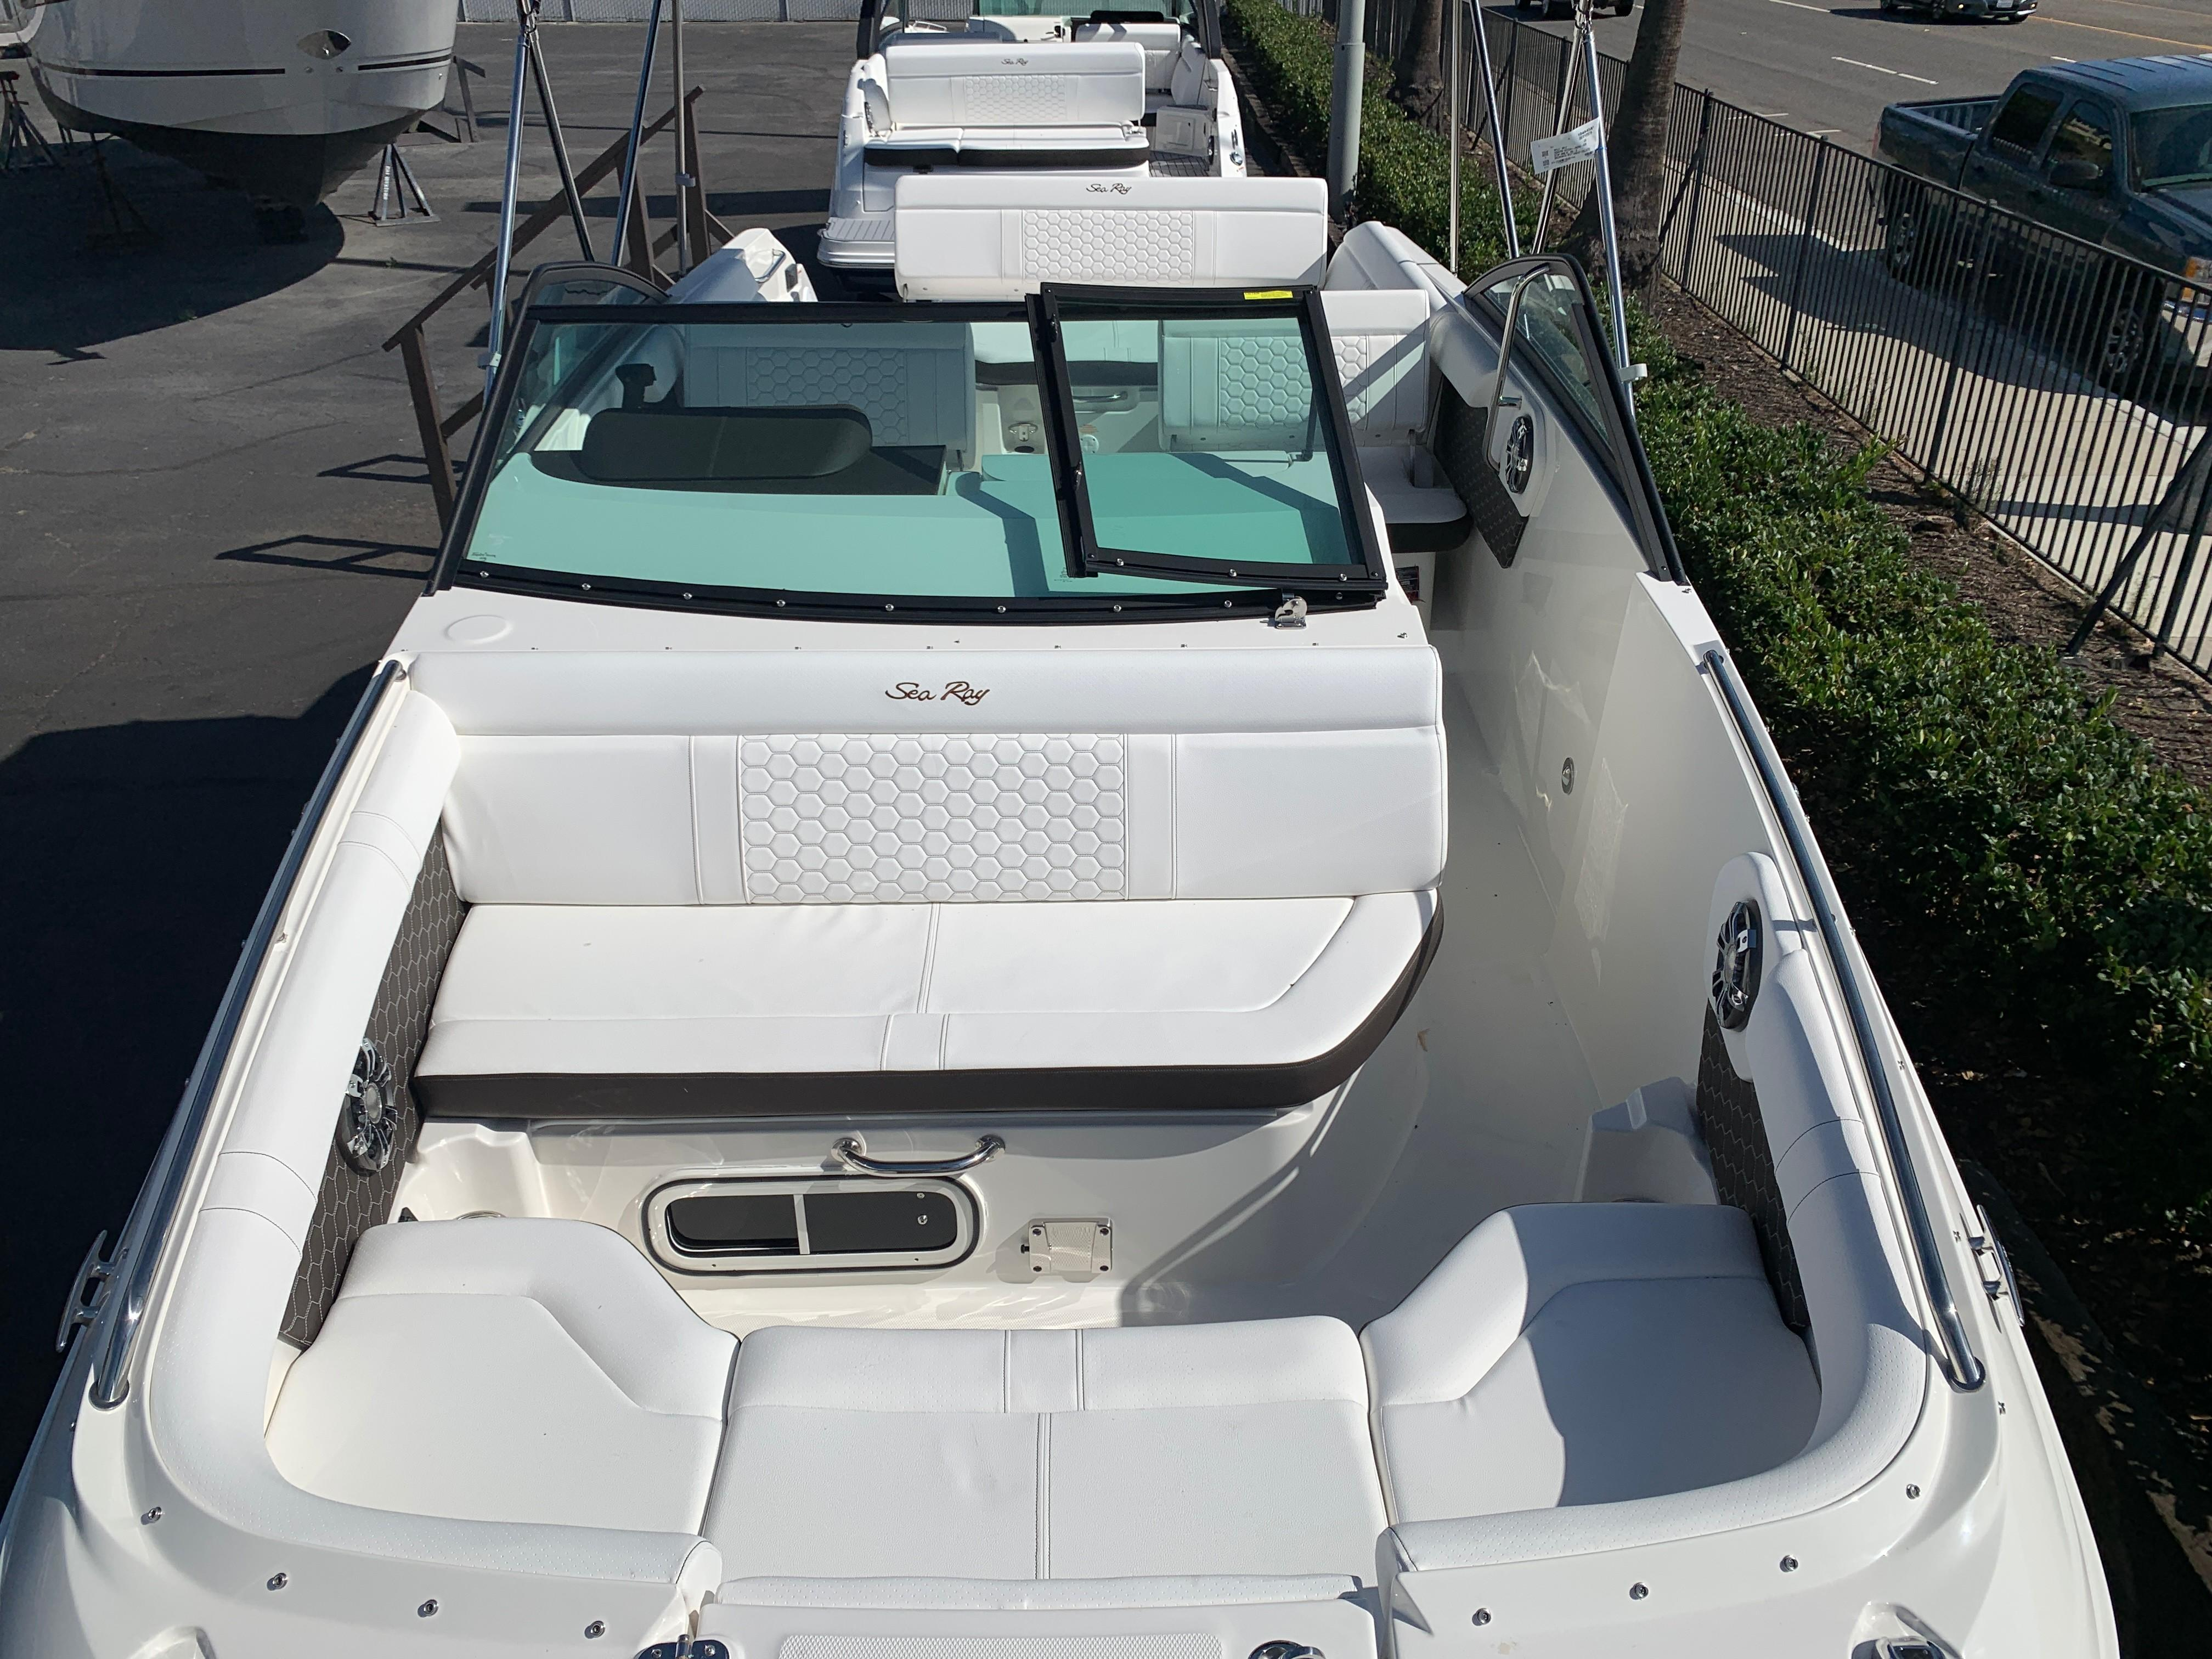 2020 Sea Ray SDX 250 #S1152G inventory image at Sun Country Inland in Irvine